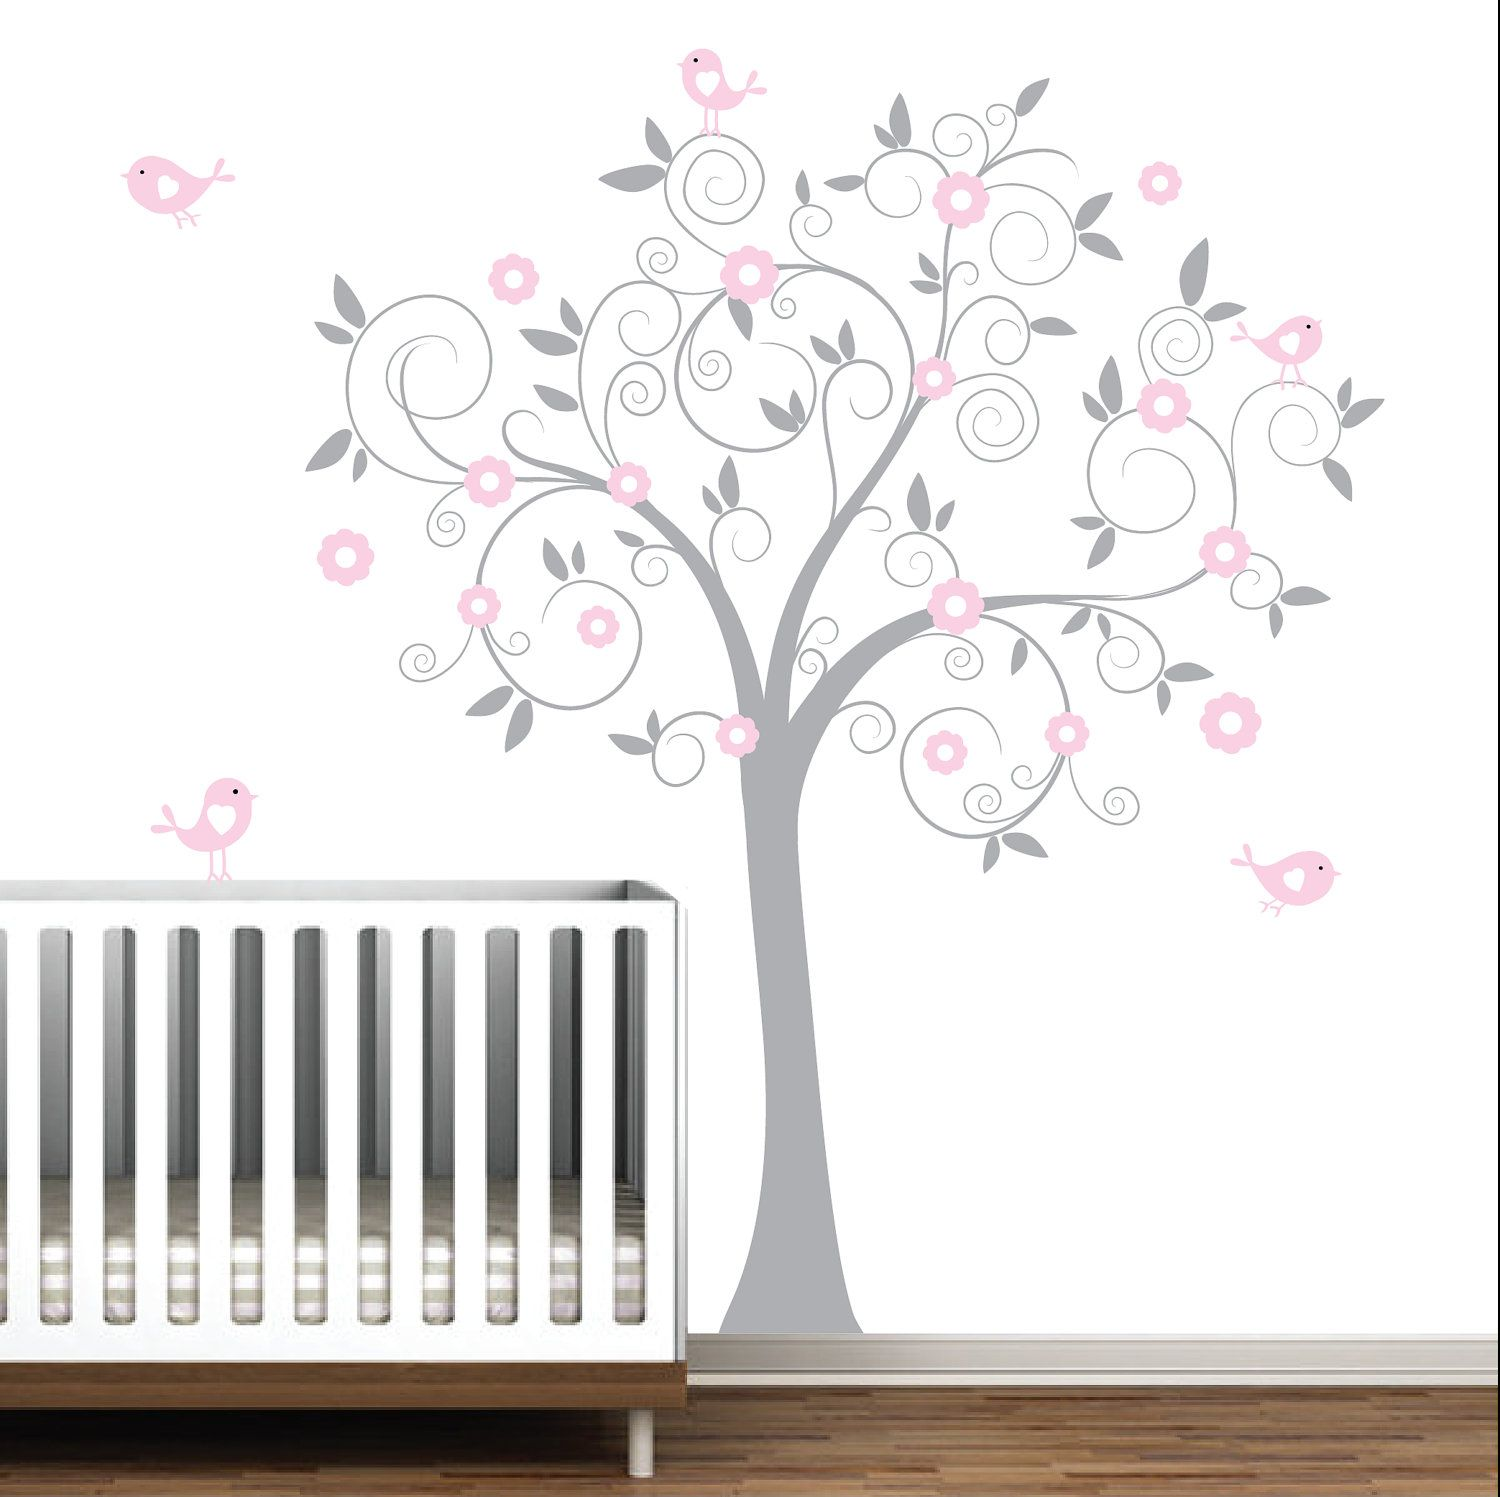 Grey and Pink Swirl Tree with Birds-Nursery Baby Wall Decal Vinyl. On etsy  sc 1 st  Pinterest & Grey and Pink Swirl Tree with Birds-Nursery Baby Wall Decal Vinyl ...